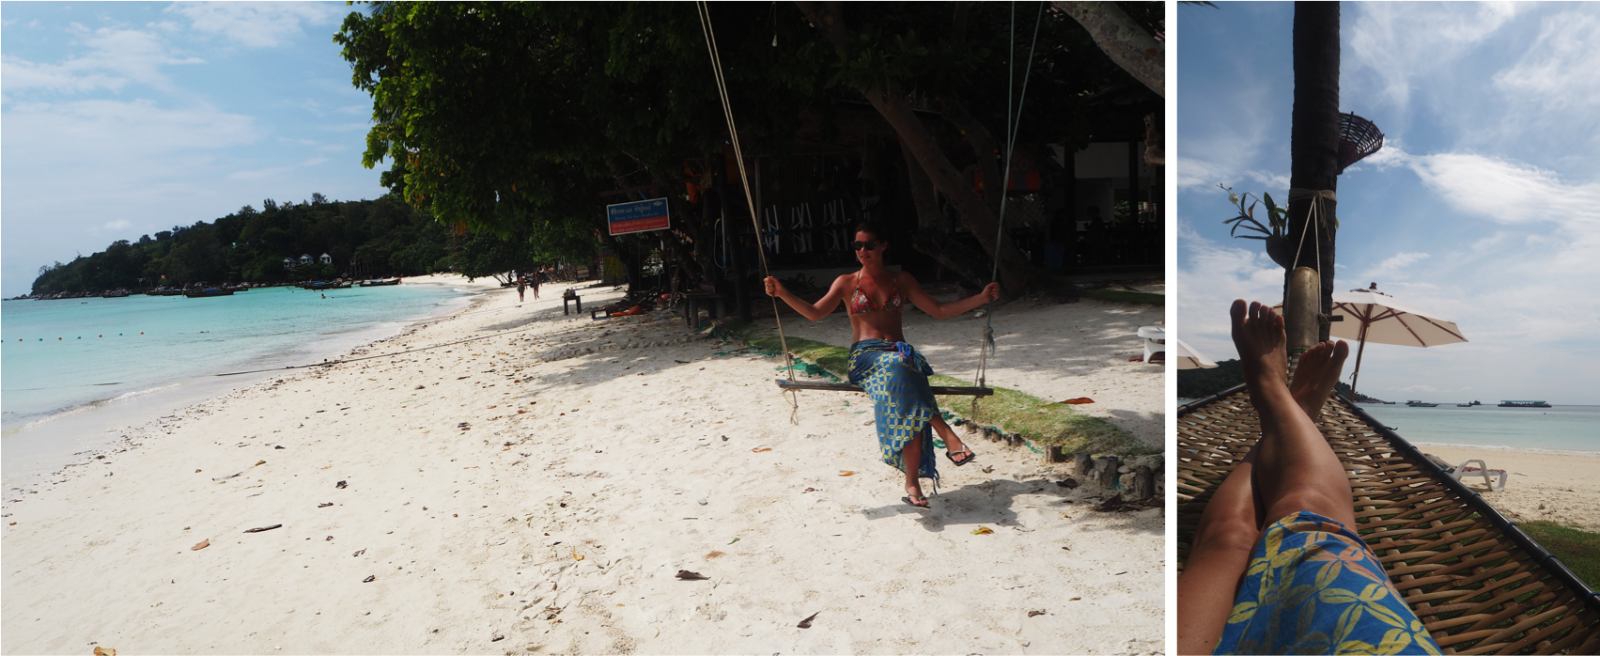 Fun at Koh Lipe